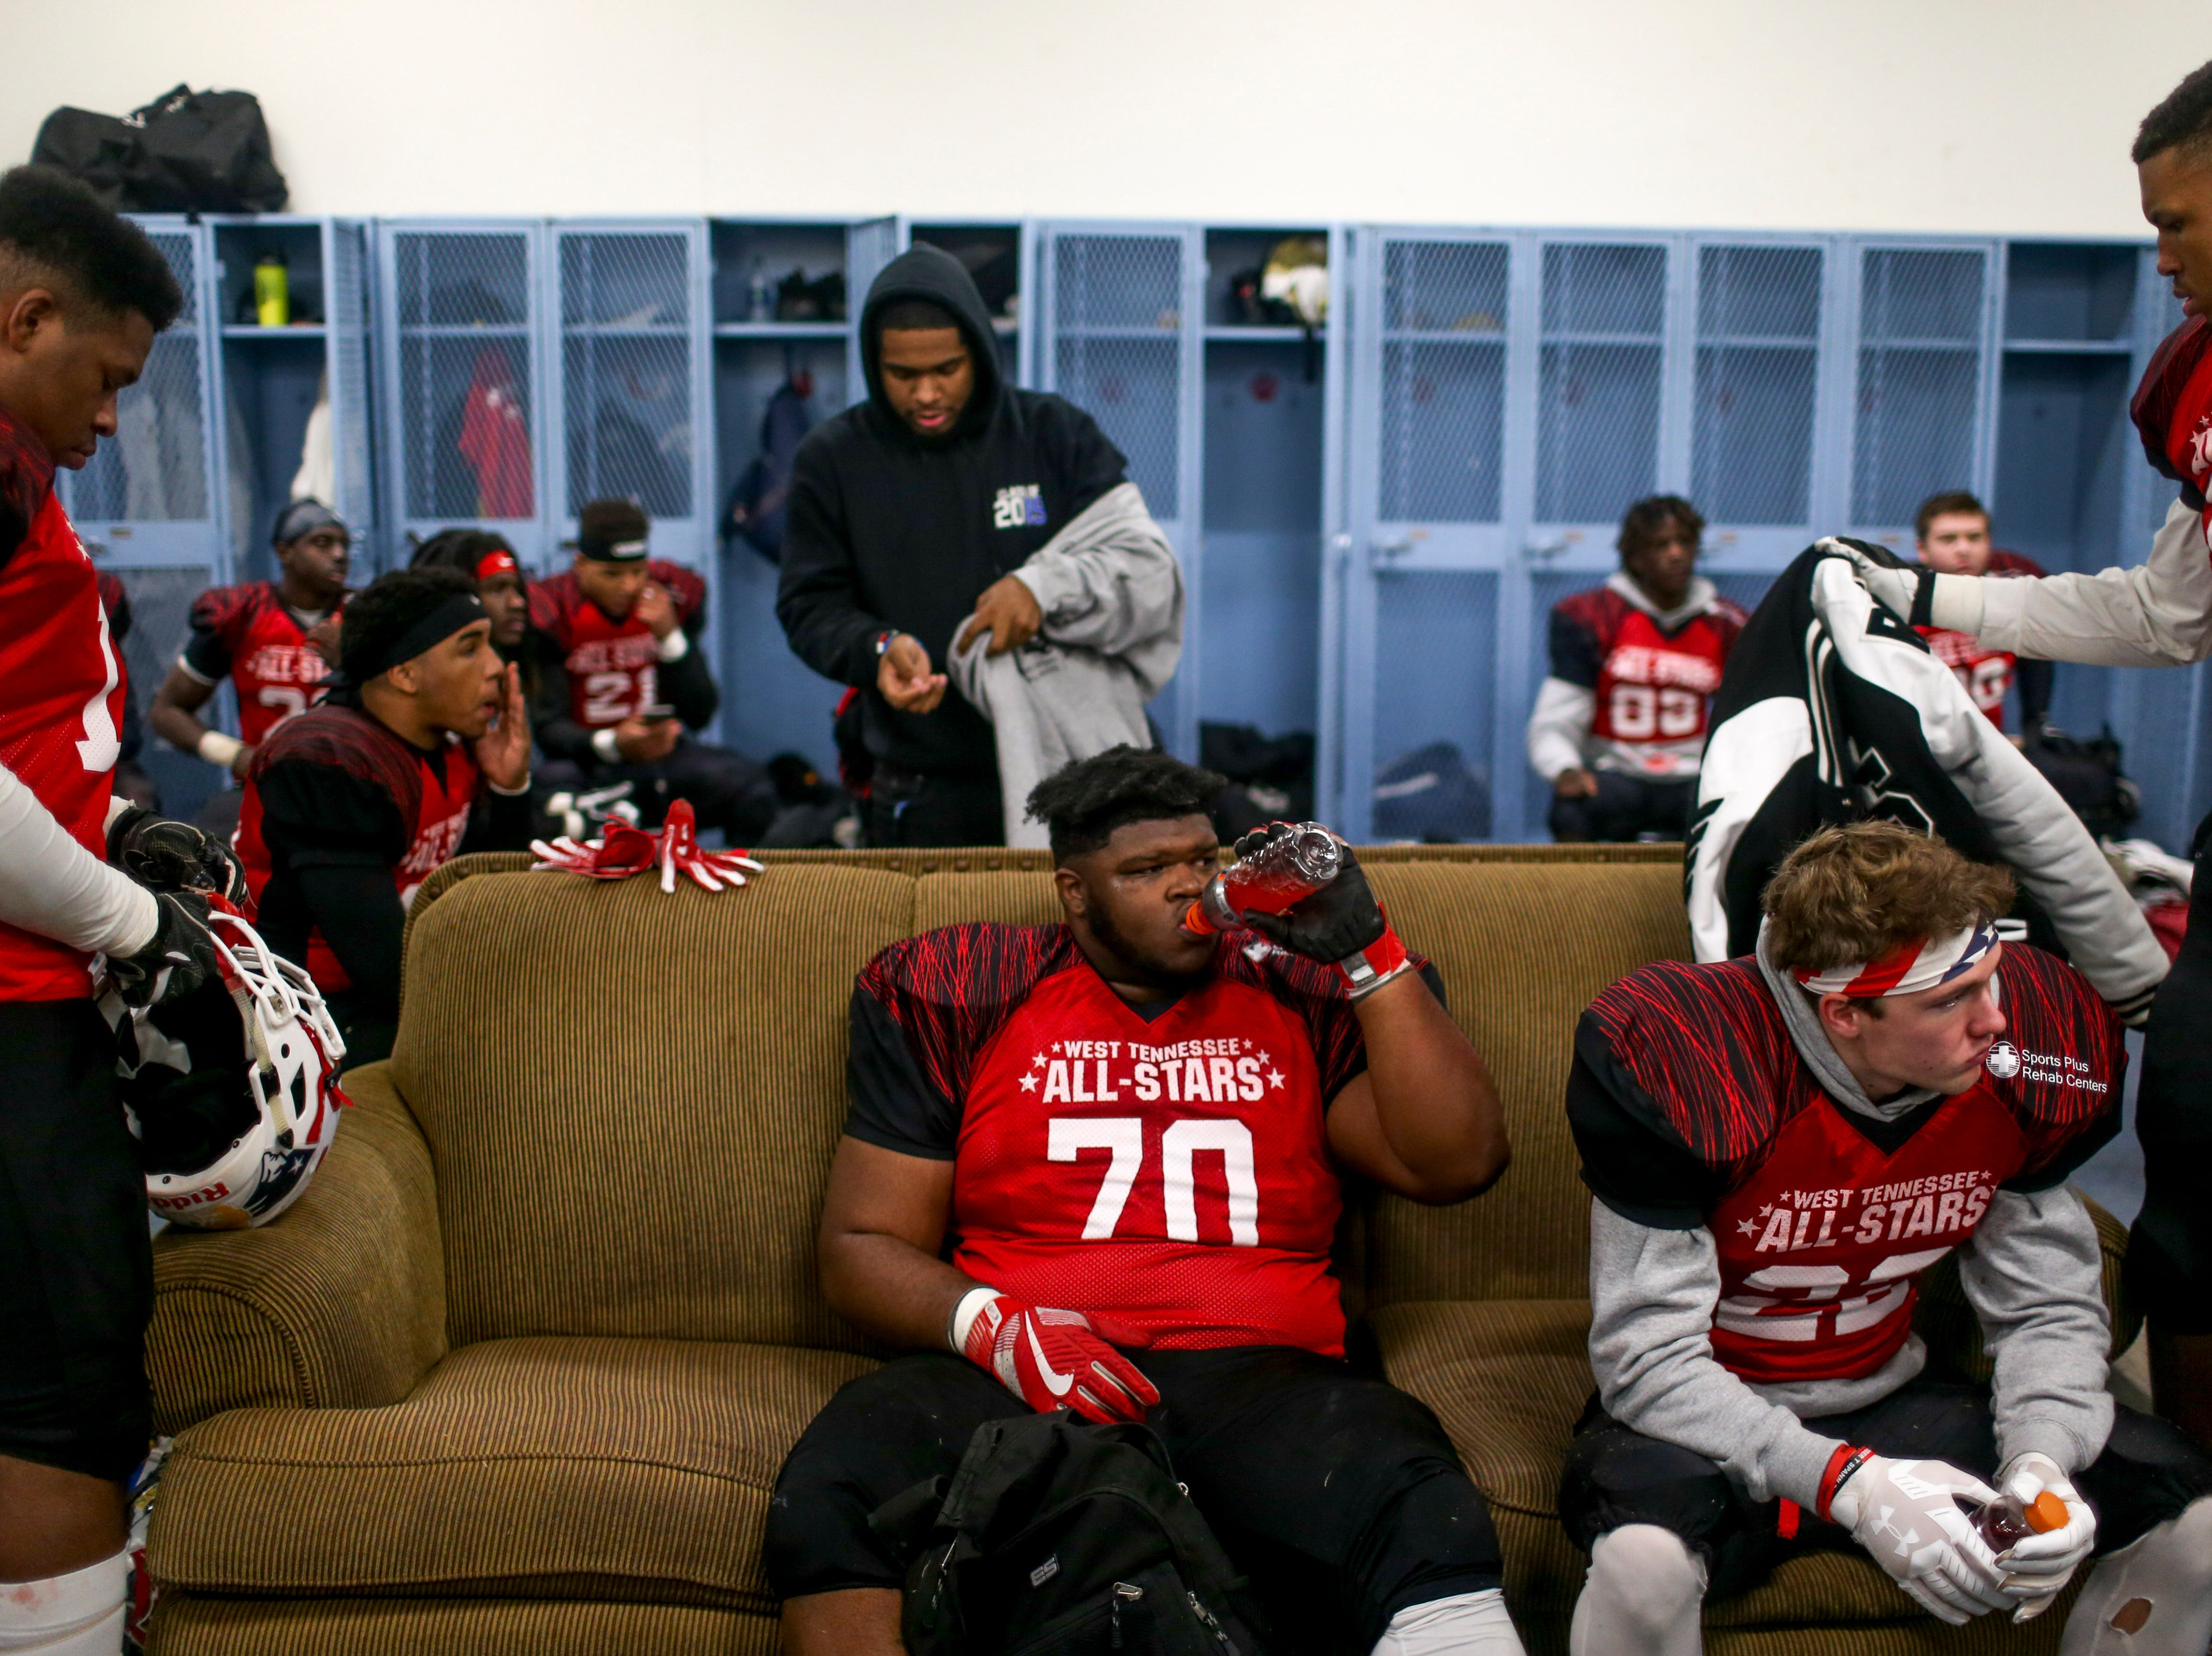 North players hang out in the locker room at half time during the West Tennessee All-Star football game at University School of Jackson in Jackson, Tenn., on Friday, Dec. 7, 2018.